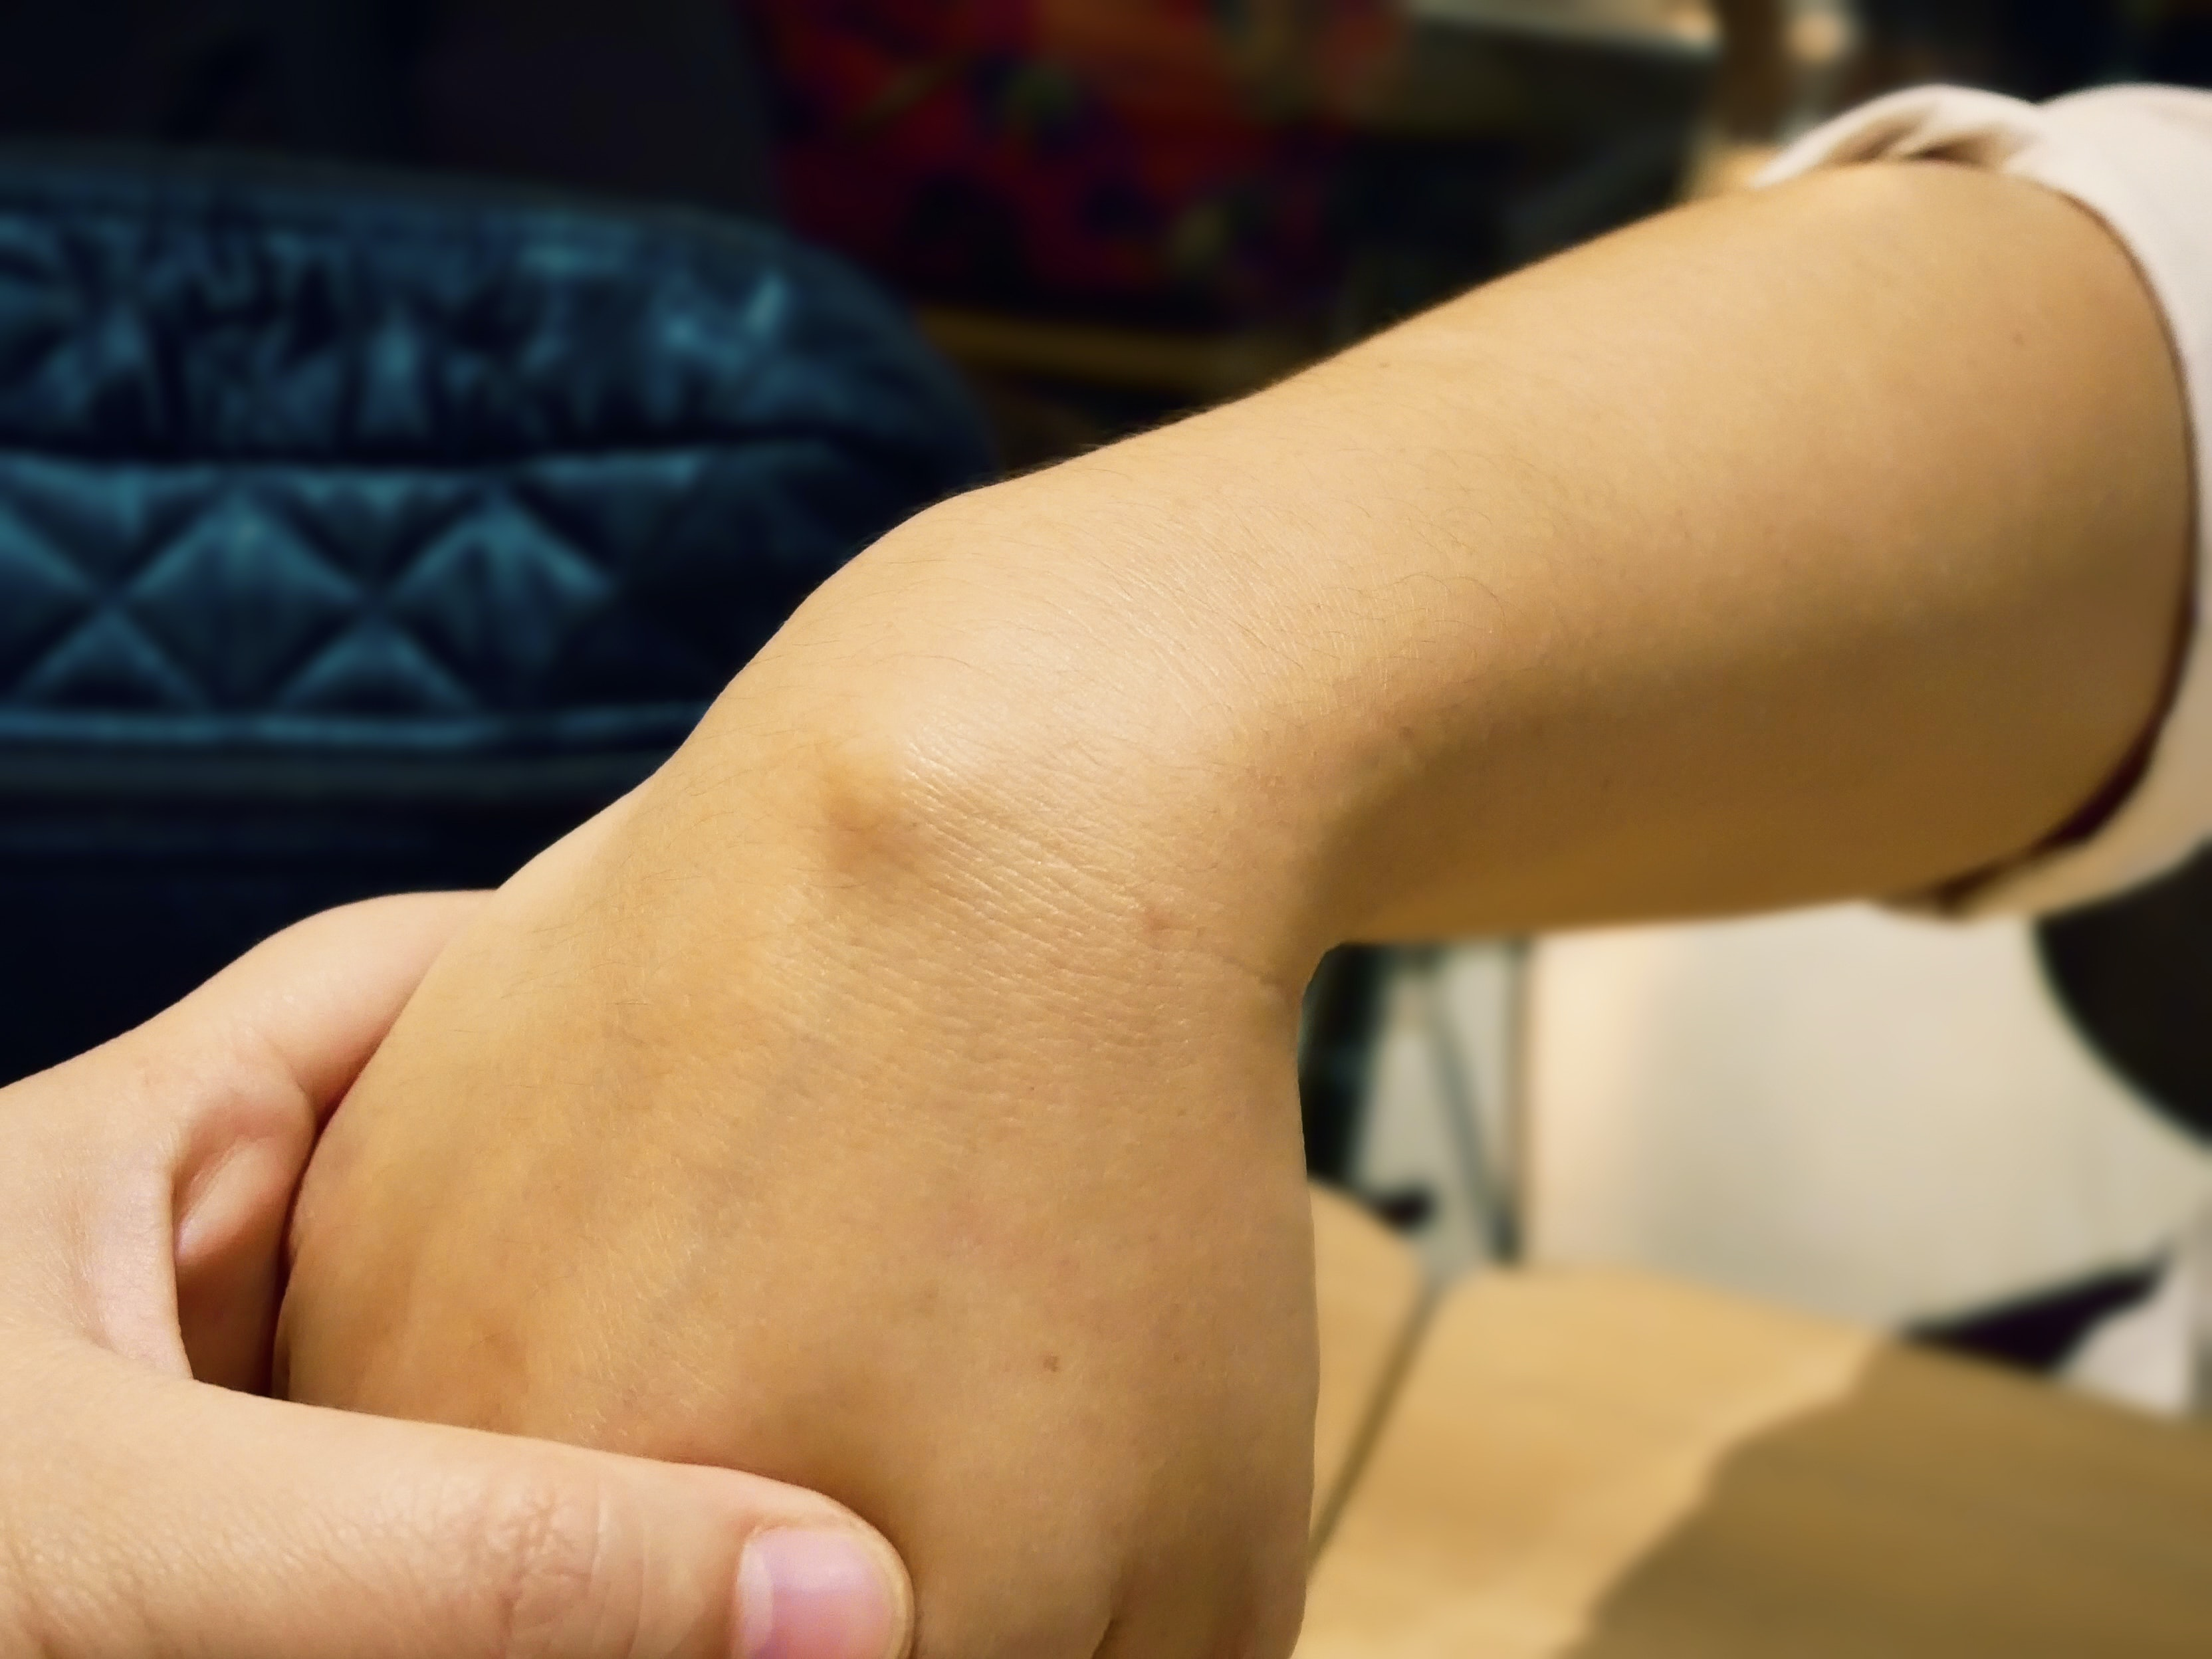 An image depicting a person suffering from painless hand lump symptoms